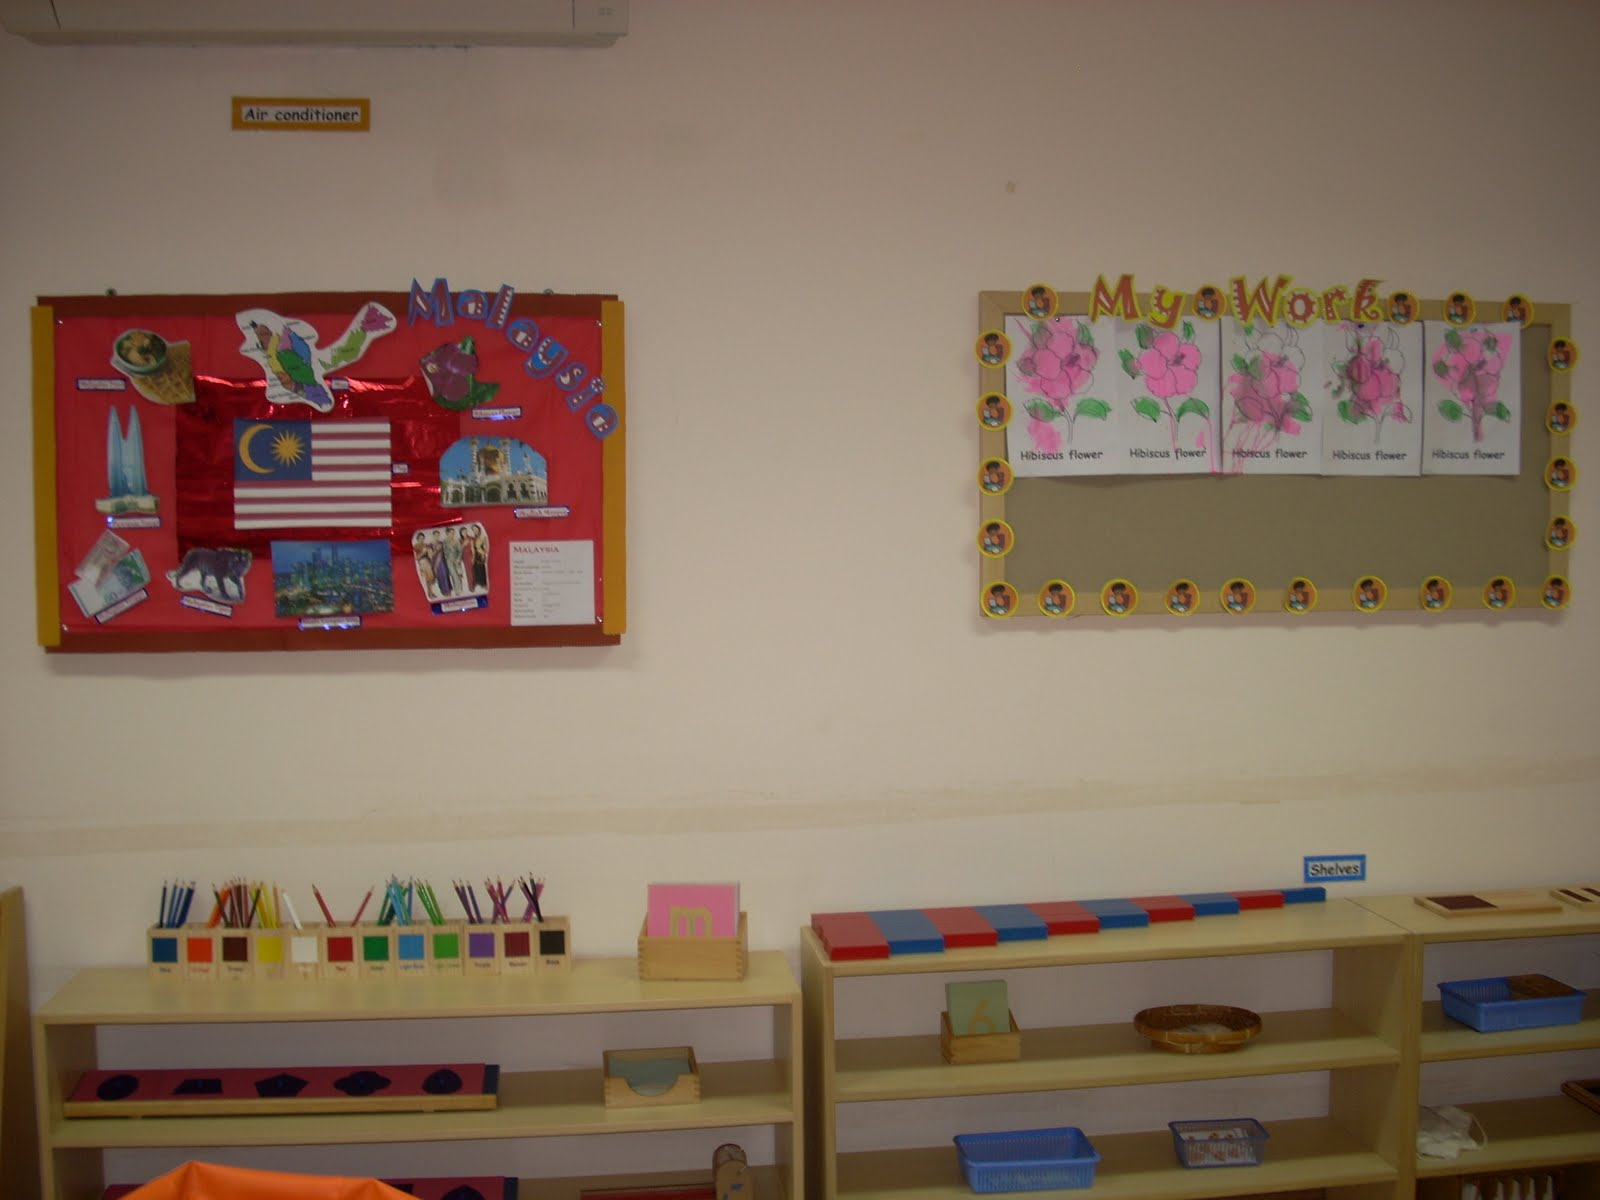 Modern Montessori International: Montessori Classroom